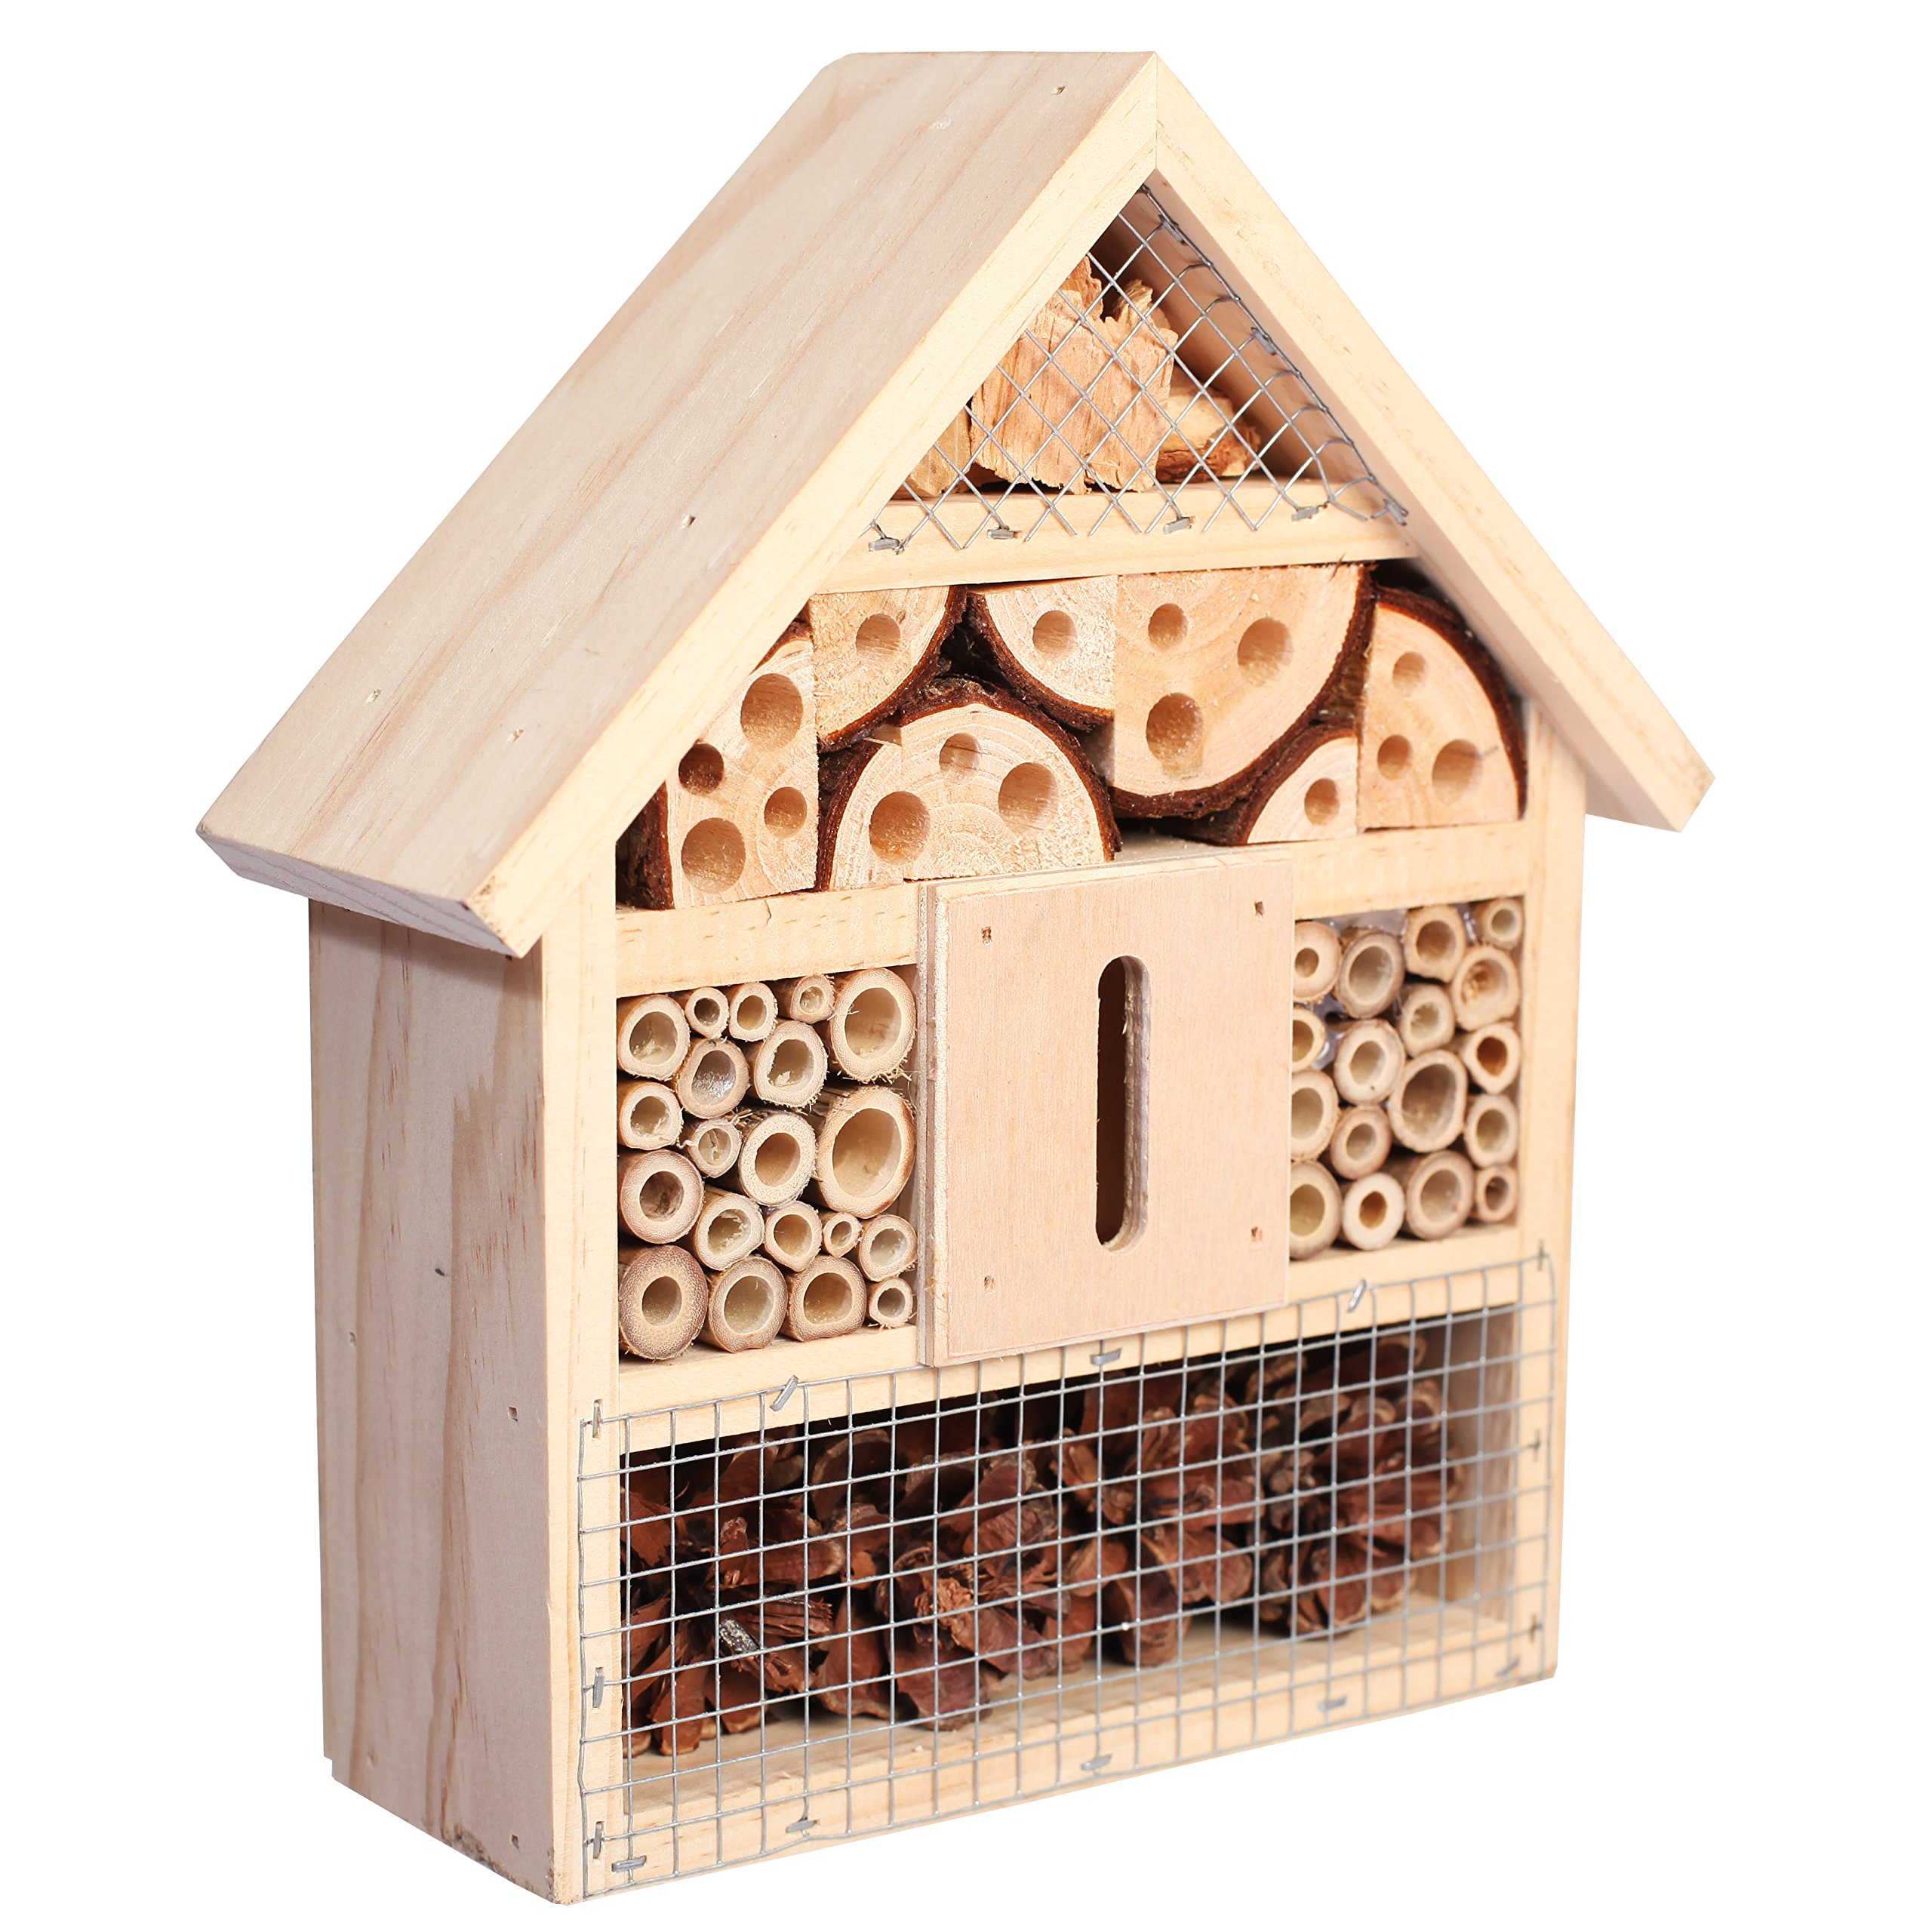 Niteangel Natural Insect Hotel Bee Bug House/Hotel